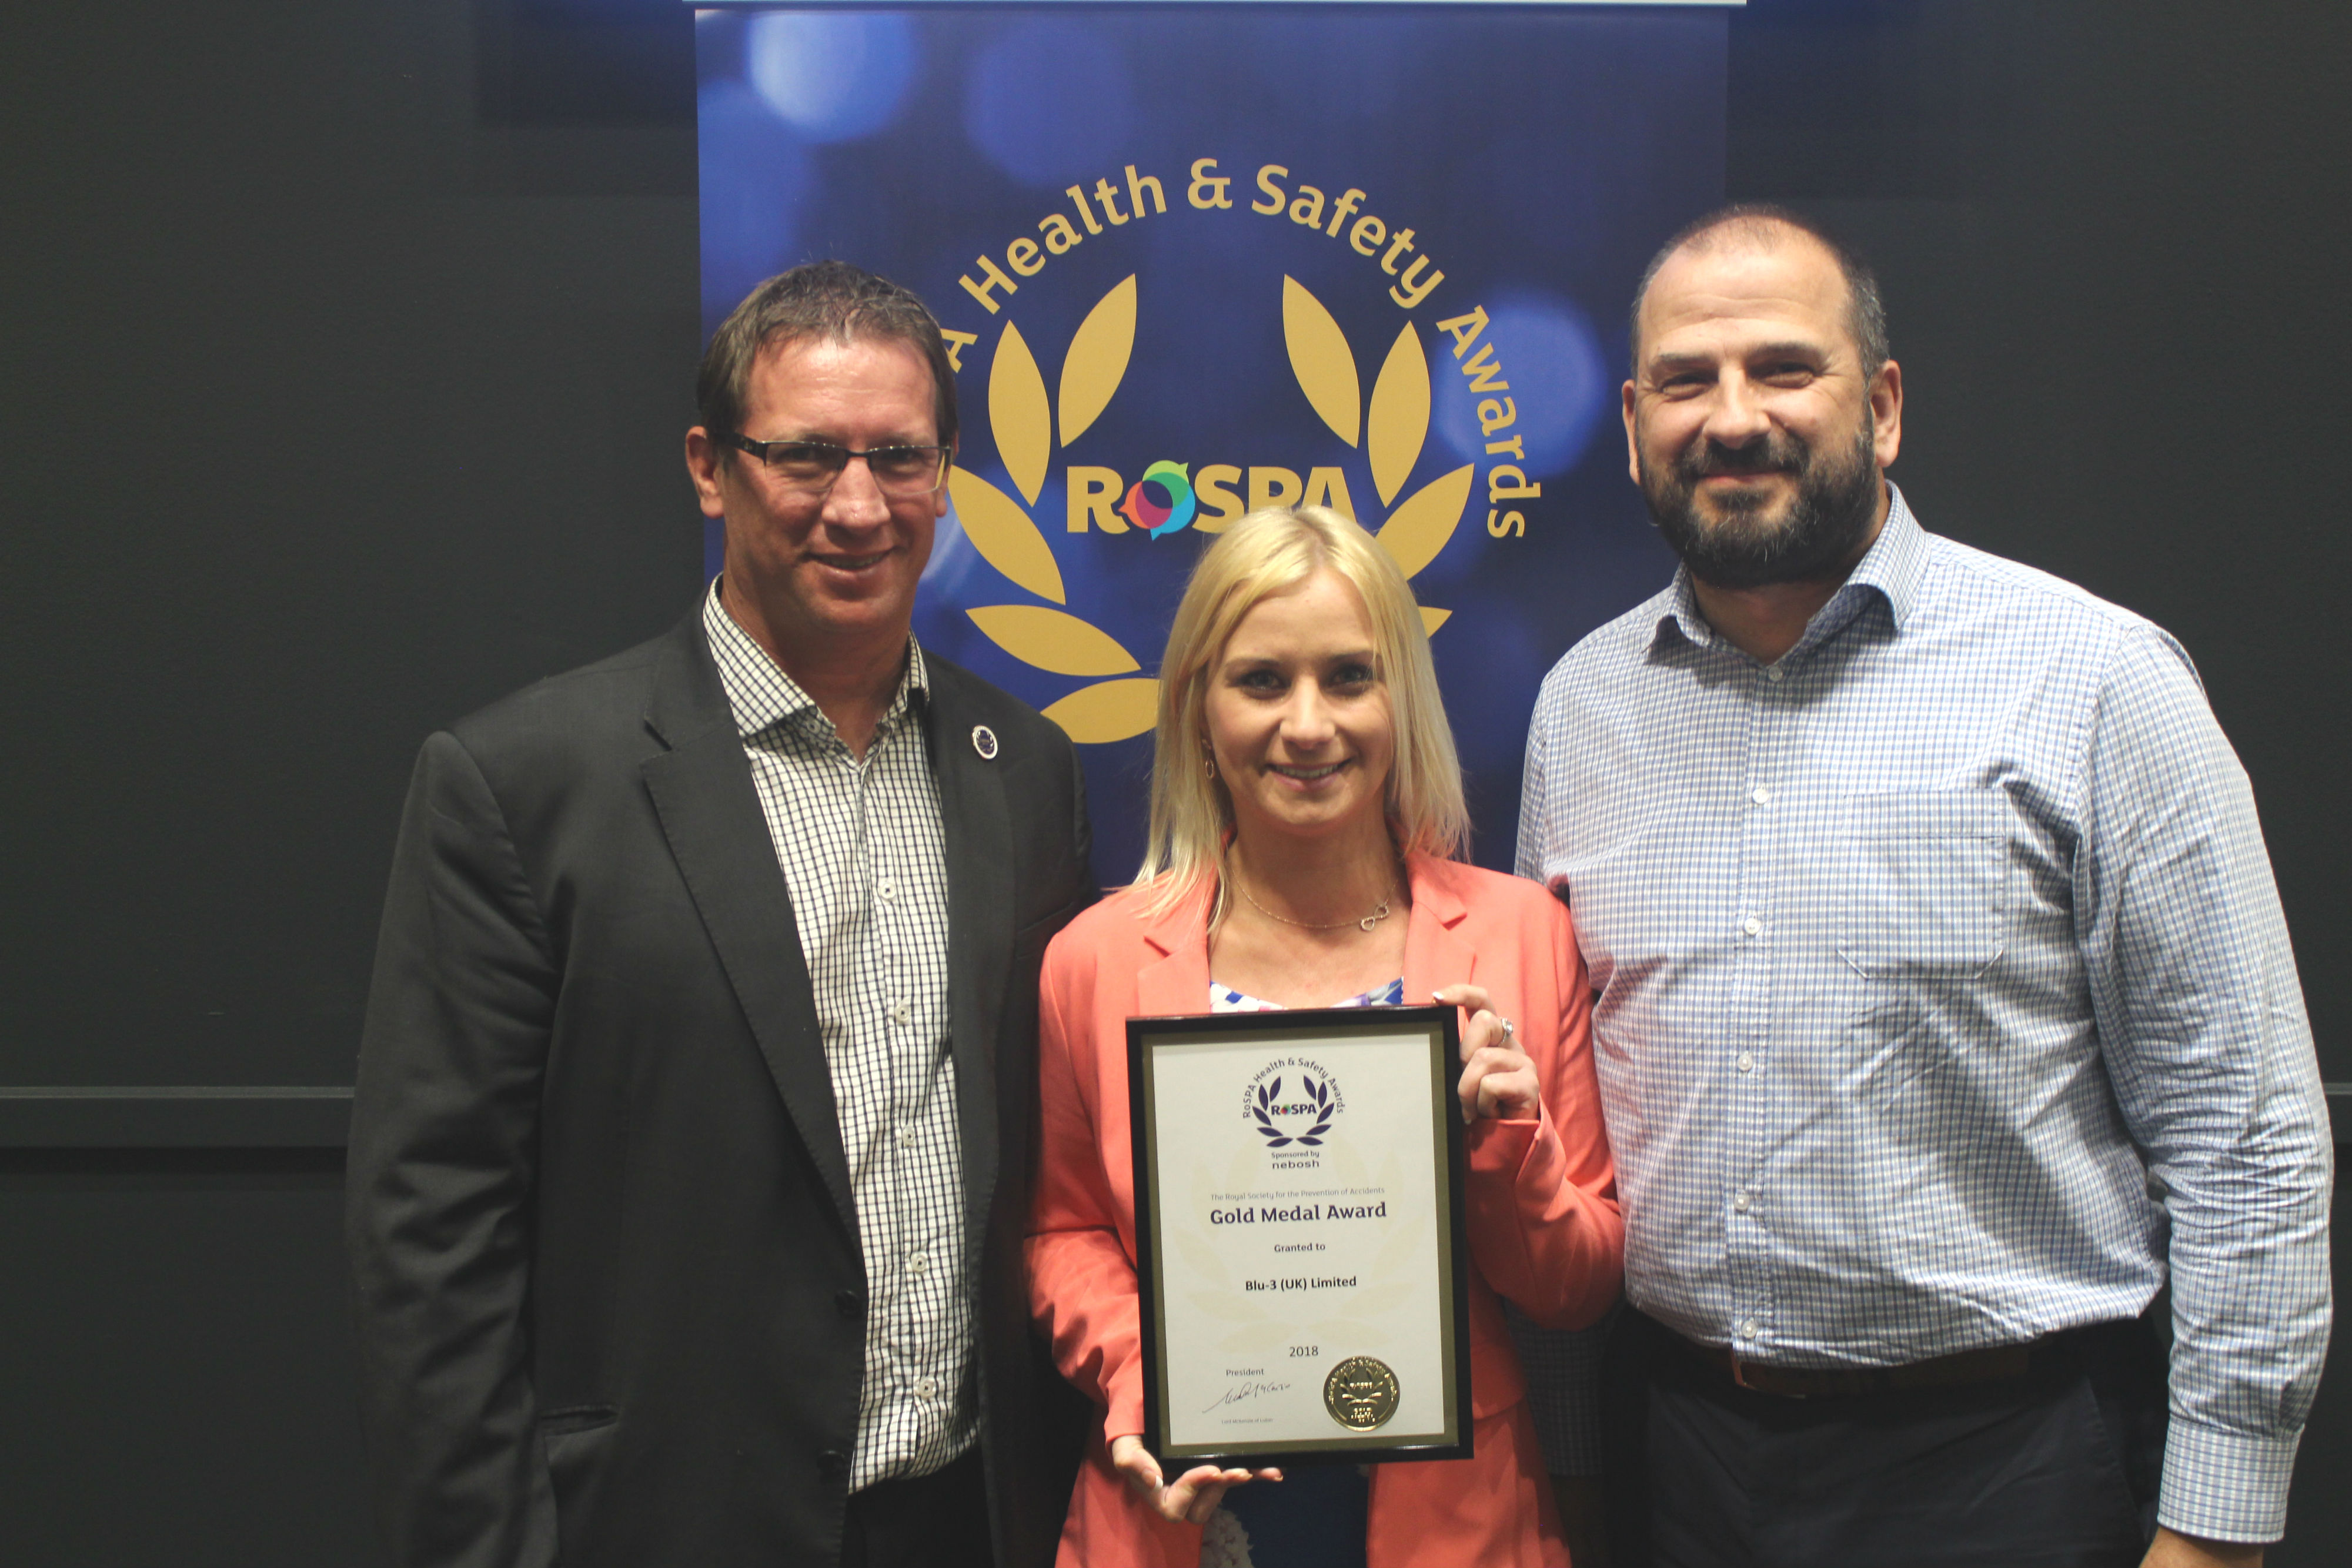 blu-3 RoSPA success - Coenraad Fourie, Phil Douce and Linda Daly from blu-3 collect the award